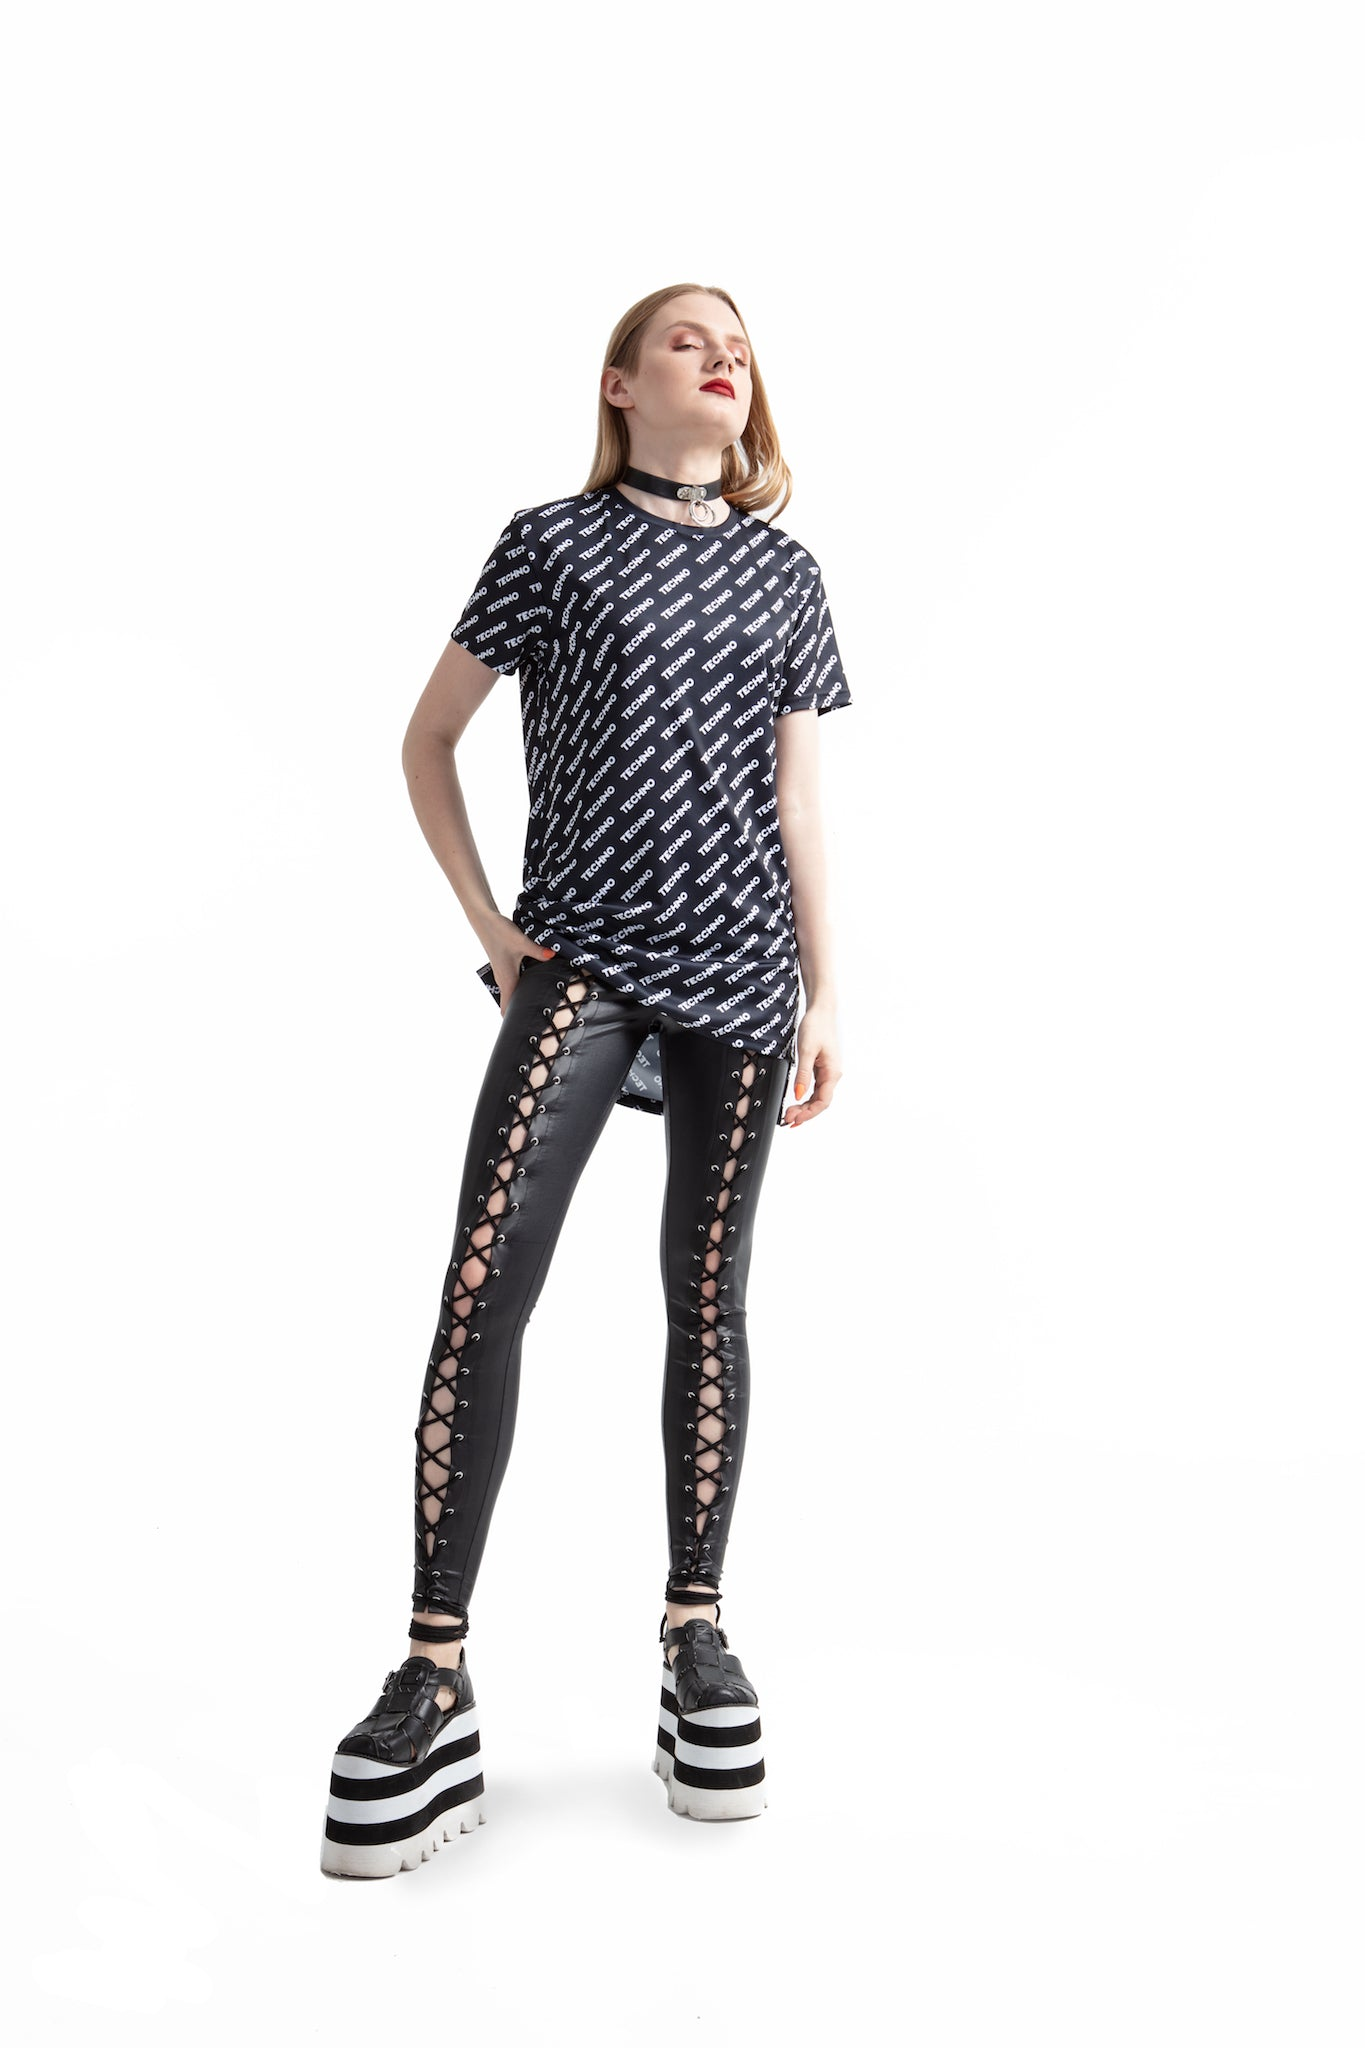 Techno - regular fit T-shirt with side cuts